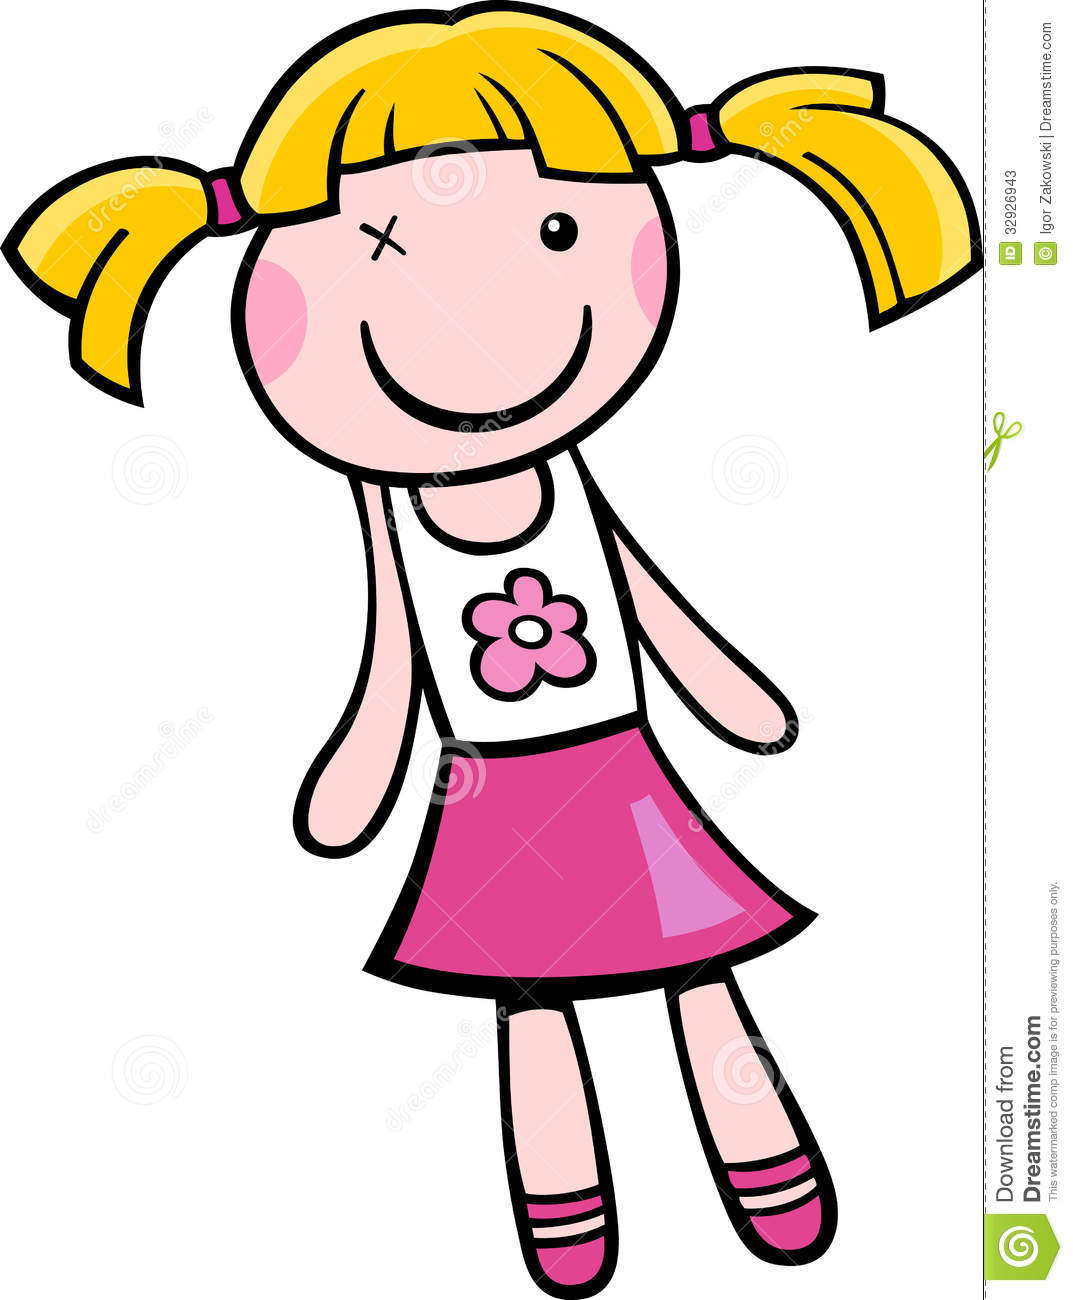 clipart of doll - photo #8